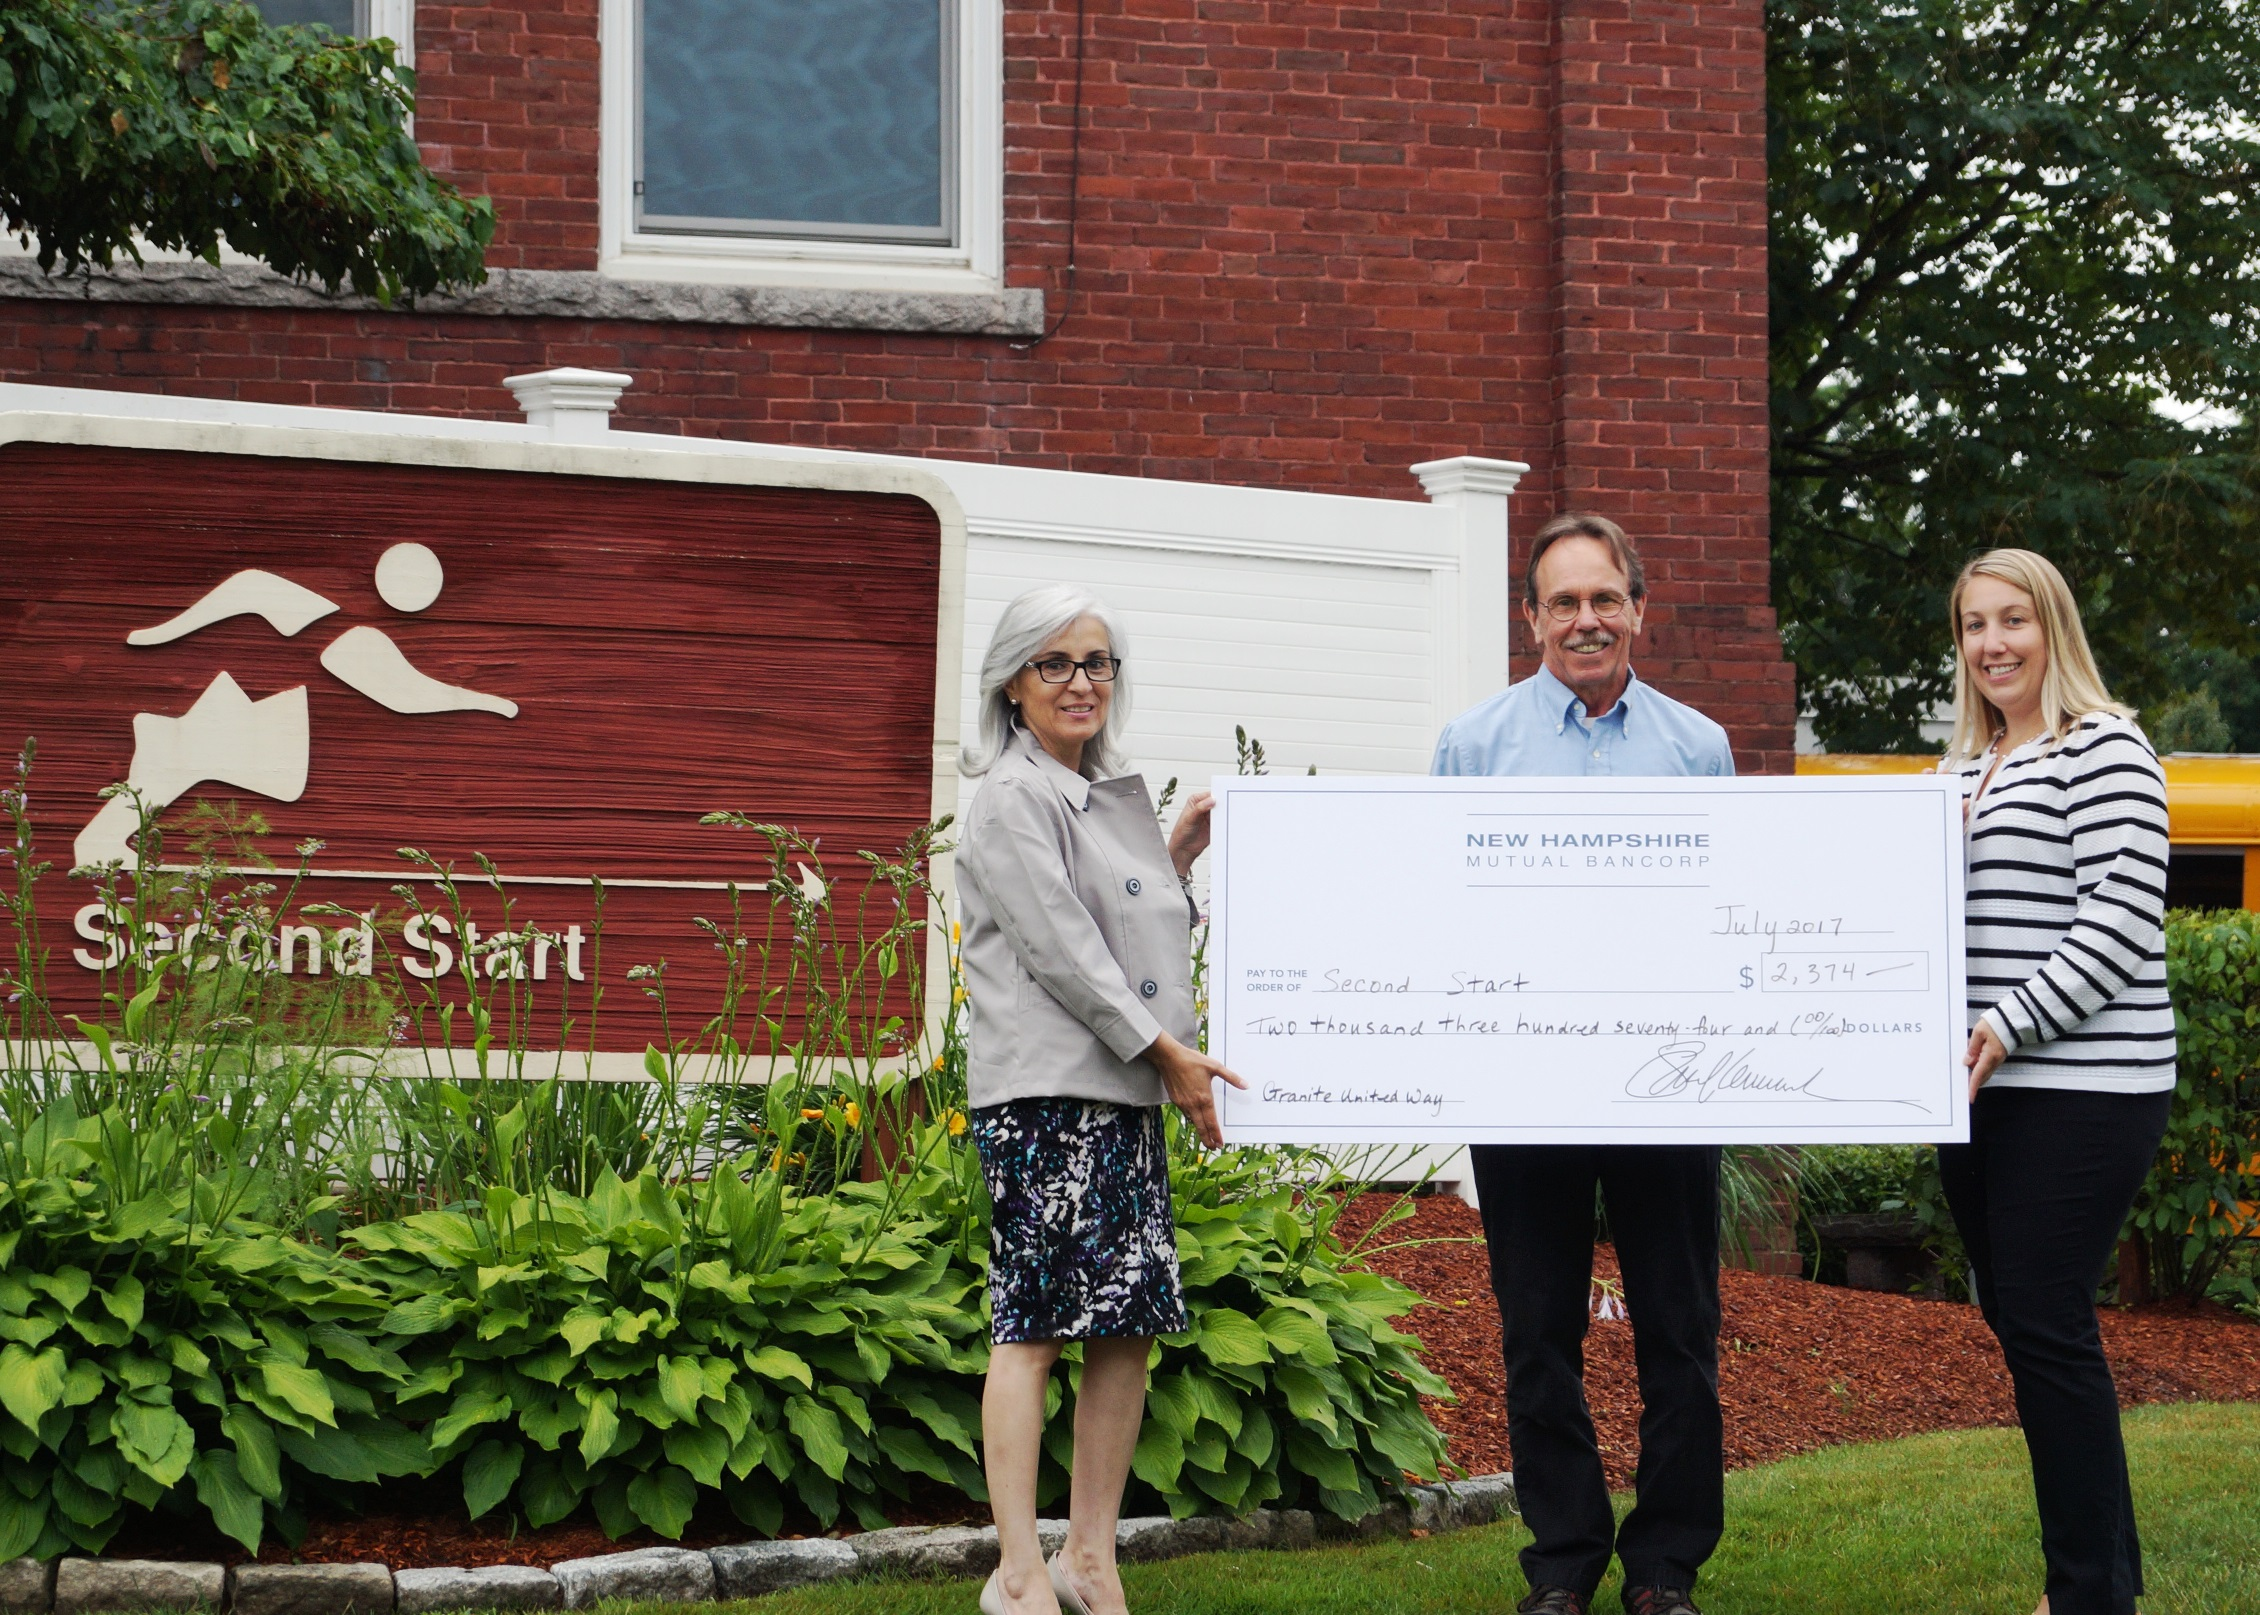 NHMB Donates to Second Start